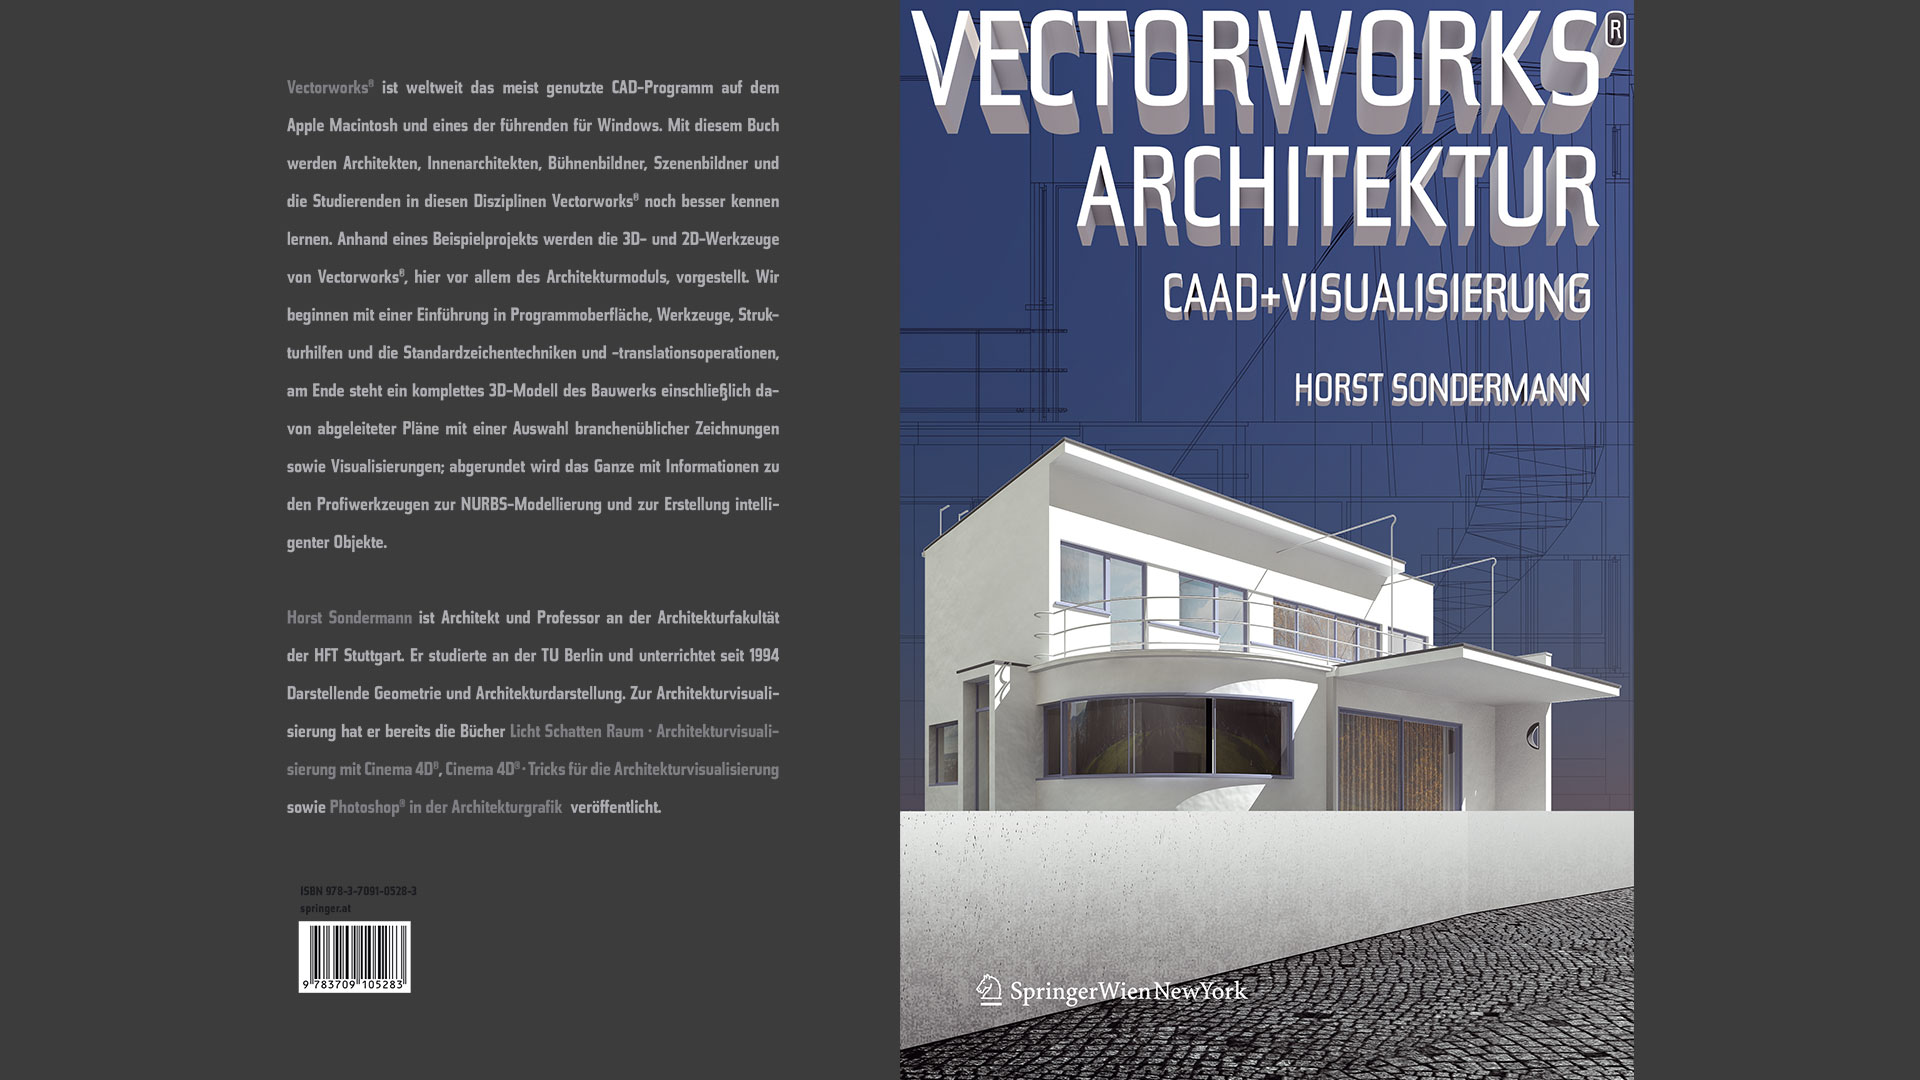 Horst Sondermann Vectorworks Architektur CAAD Visualisierung Buch Springer Publikation 2011